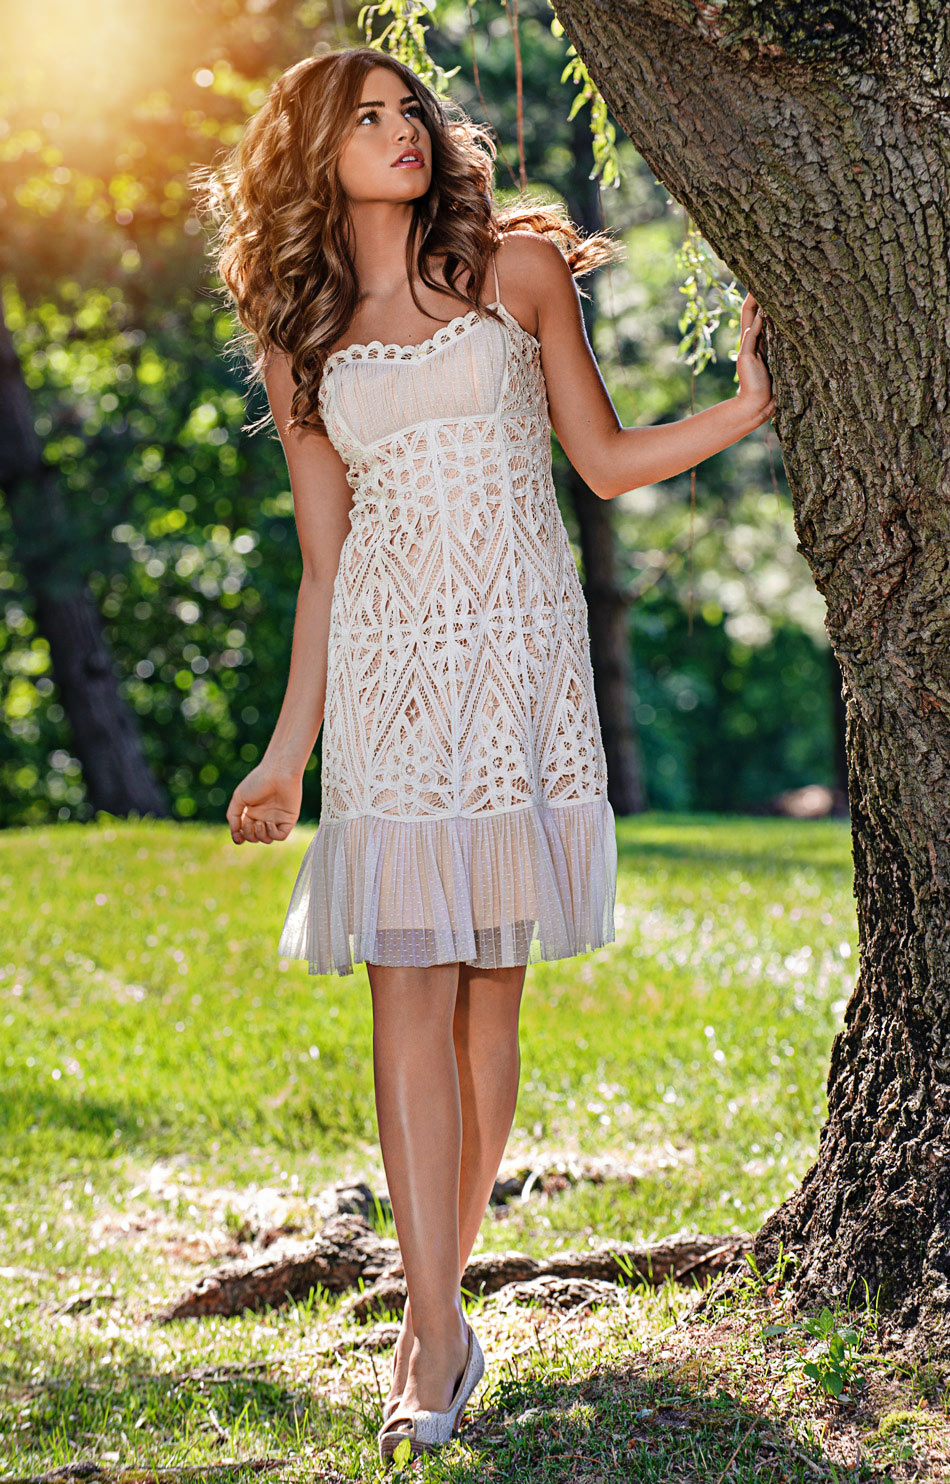 fashion model in a summer dress outdoors